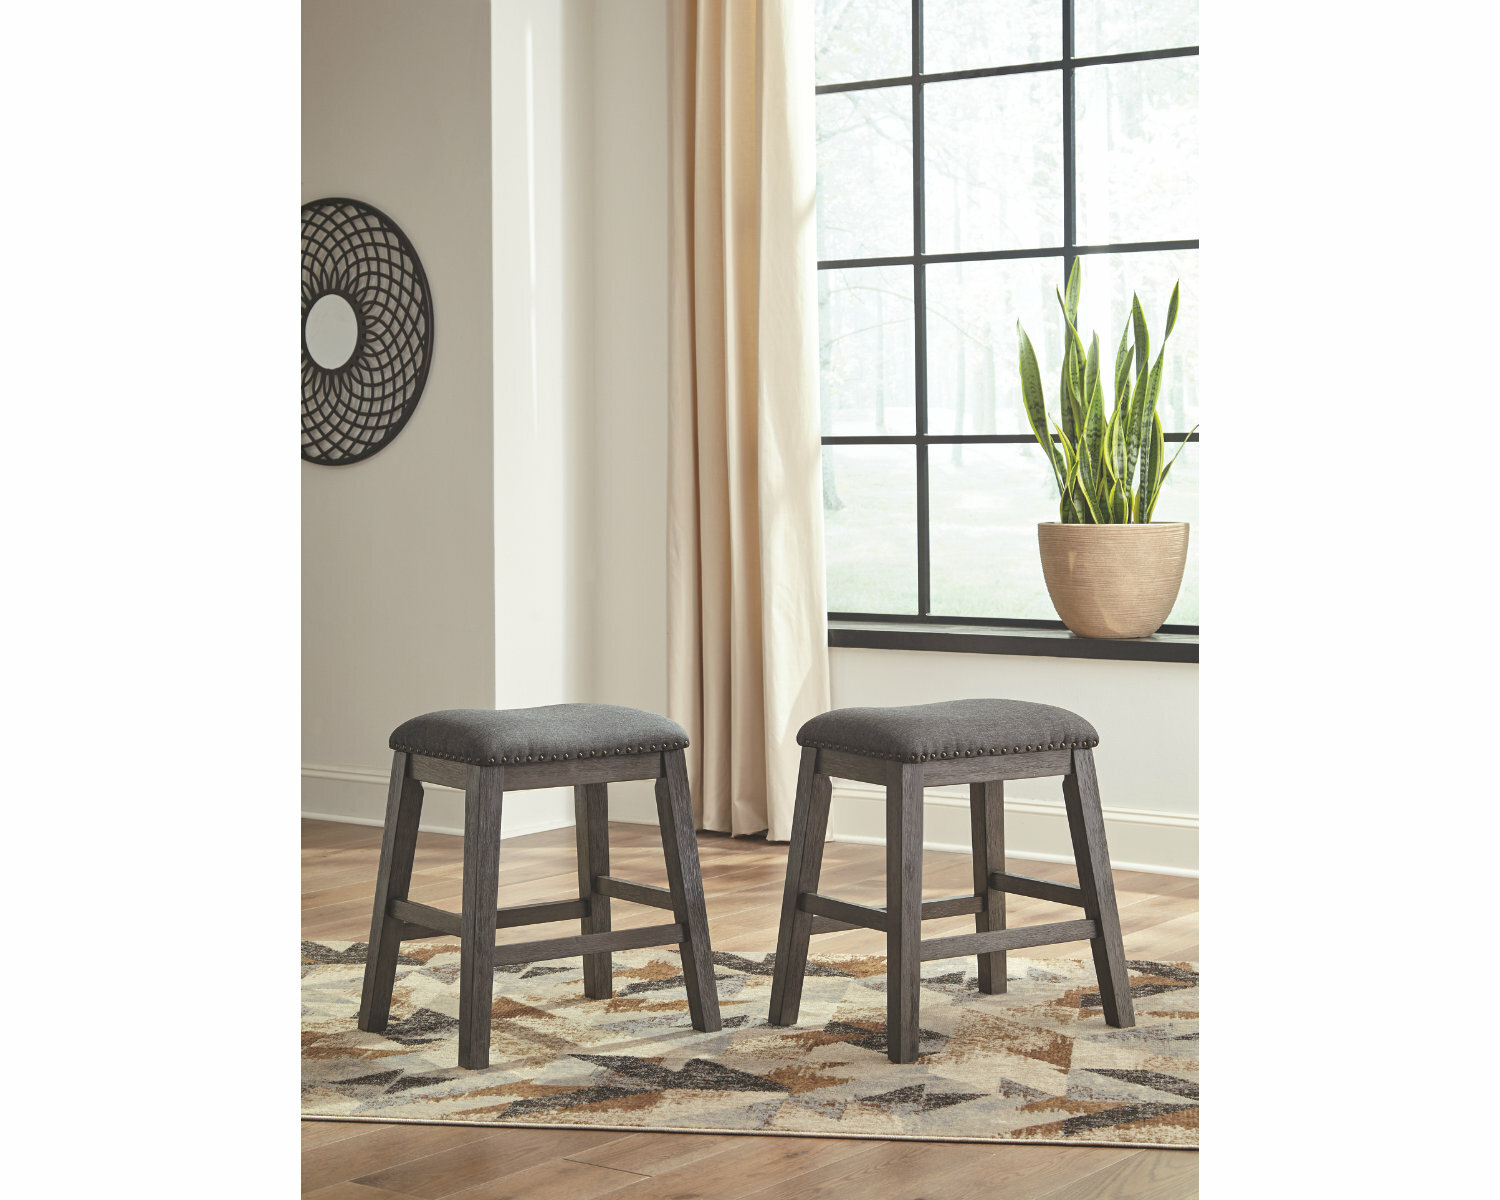 Incredible Cavallaro Backless Counter Height 24 Bar Stool Pabps2019 Chair Design Images Pabps2019Com